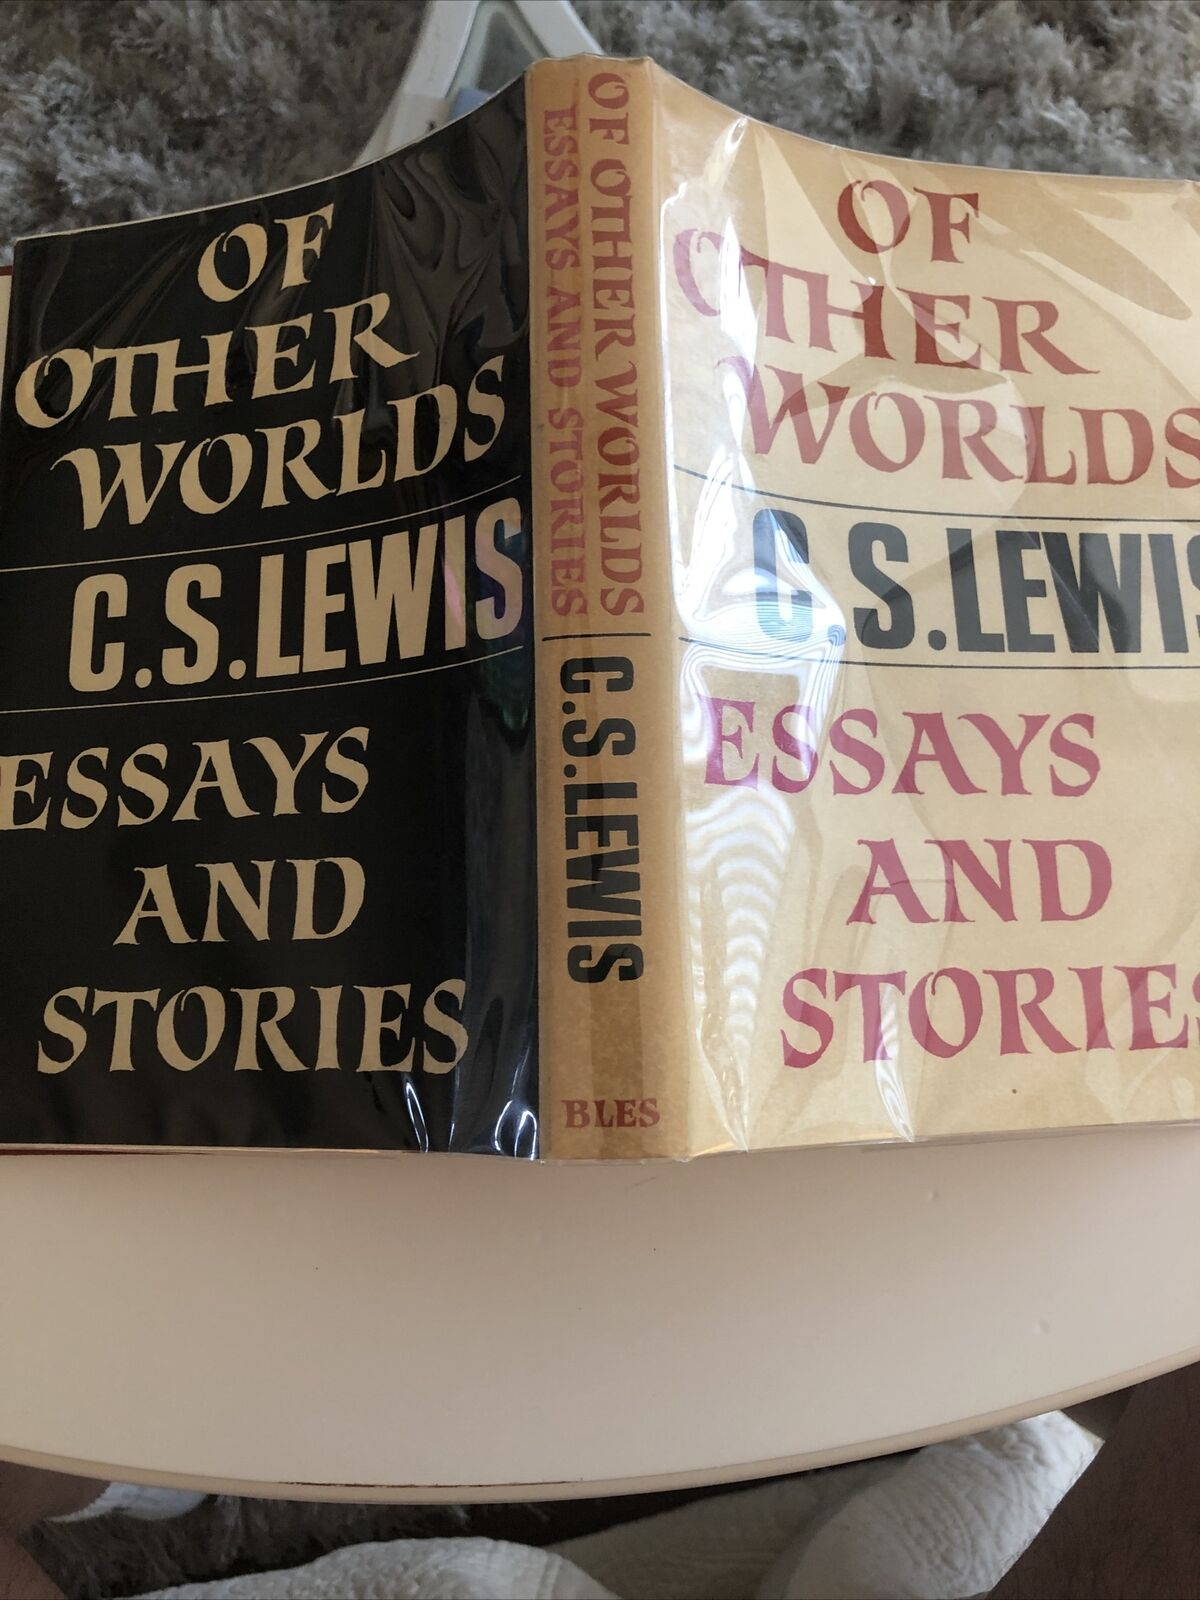 *EXTREMELY RARE* Of Other Worlds C. S. Lewis UK 1st Ed 1st Printing VG+/VG+CLEAN |